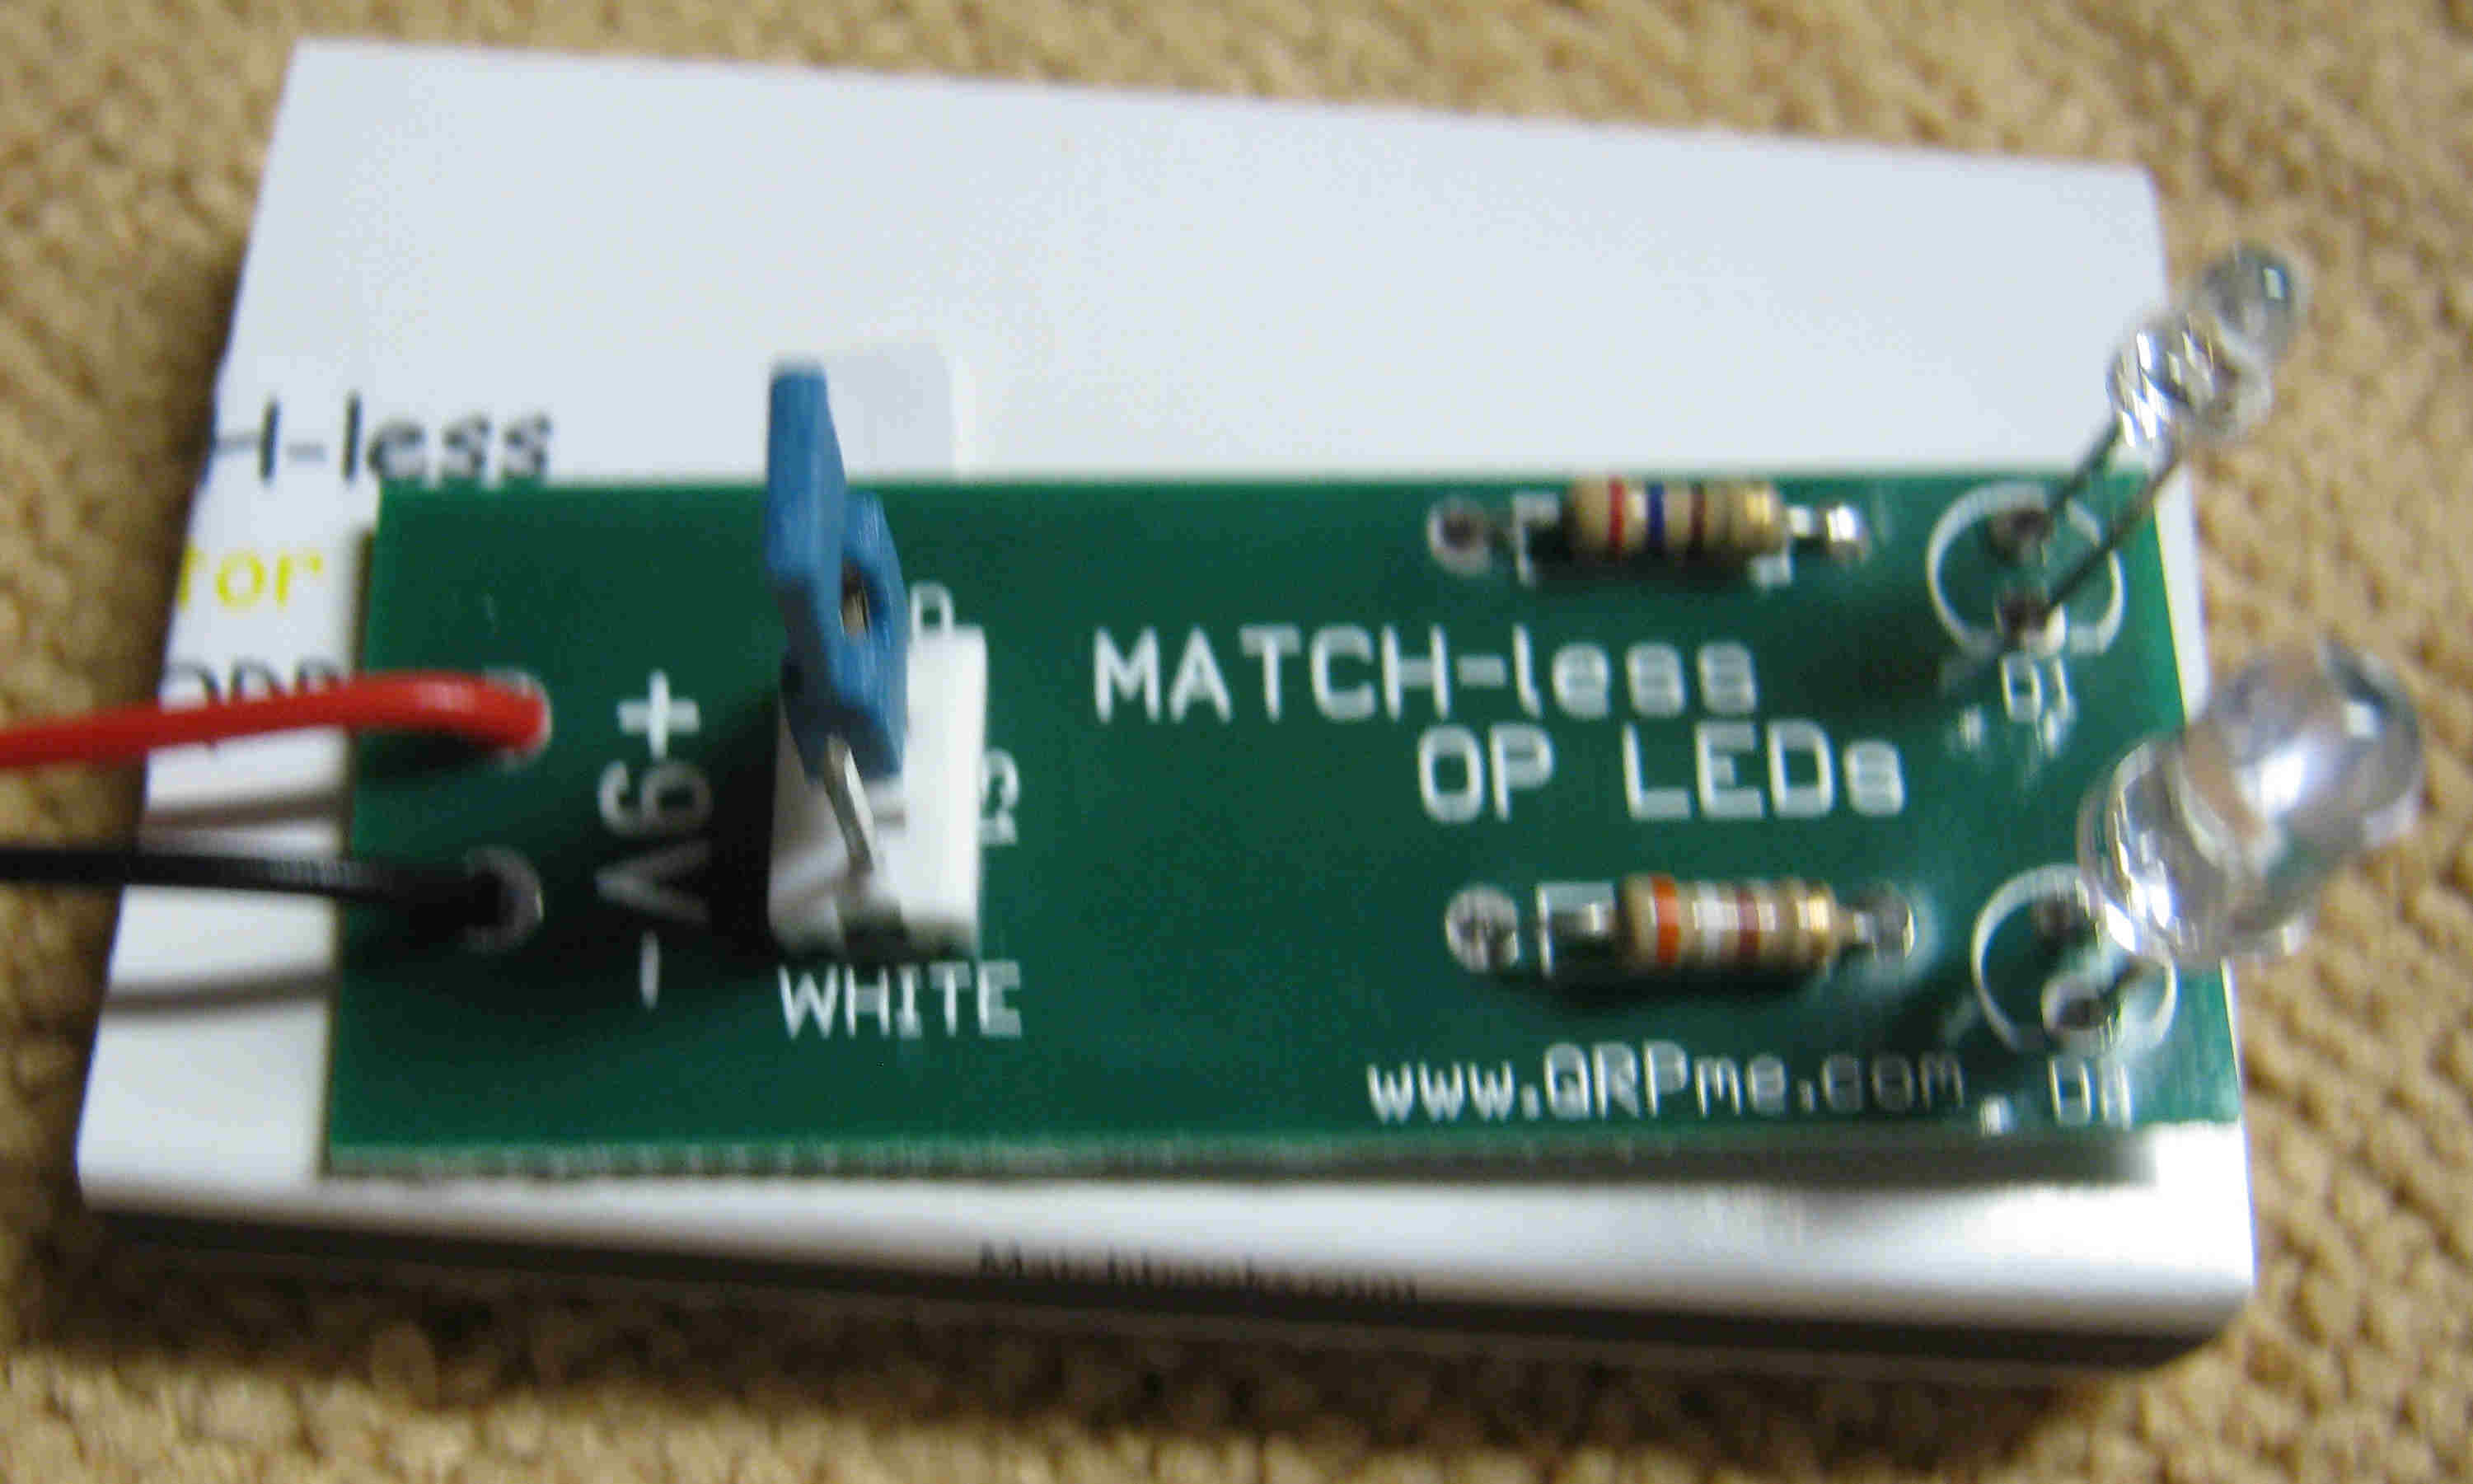 Picture of Match-less OP LEDs